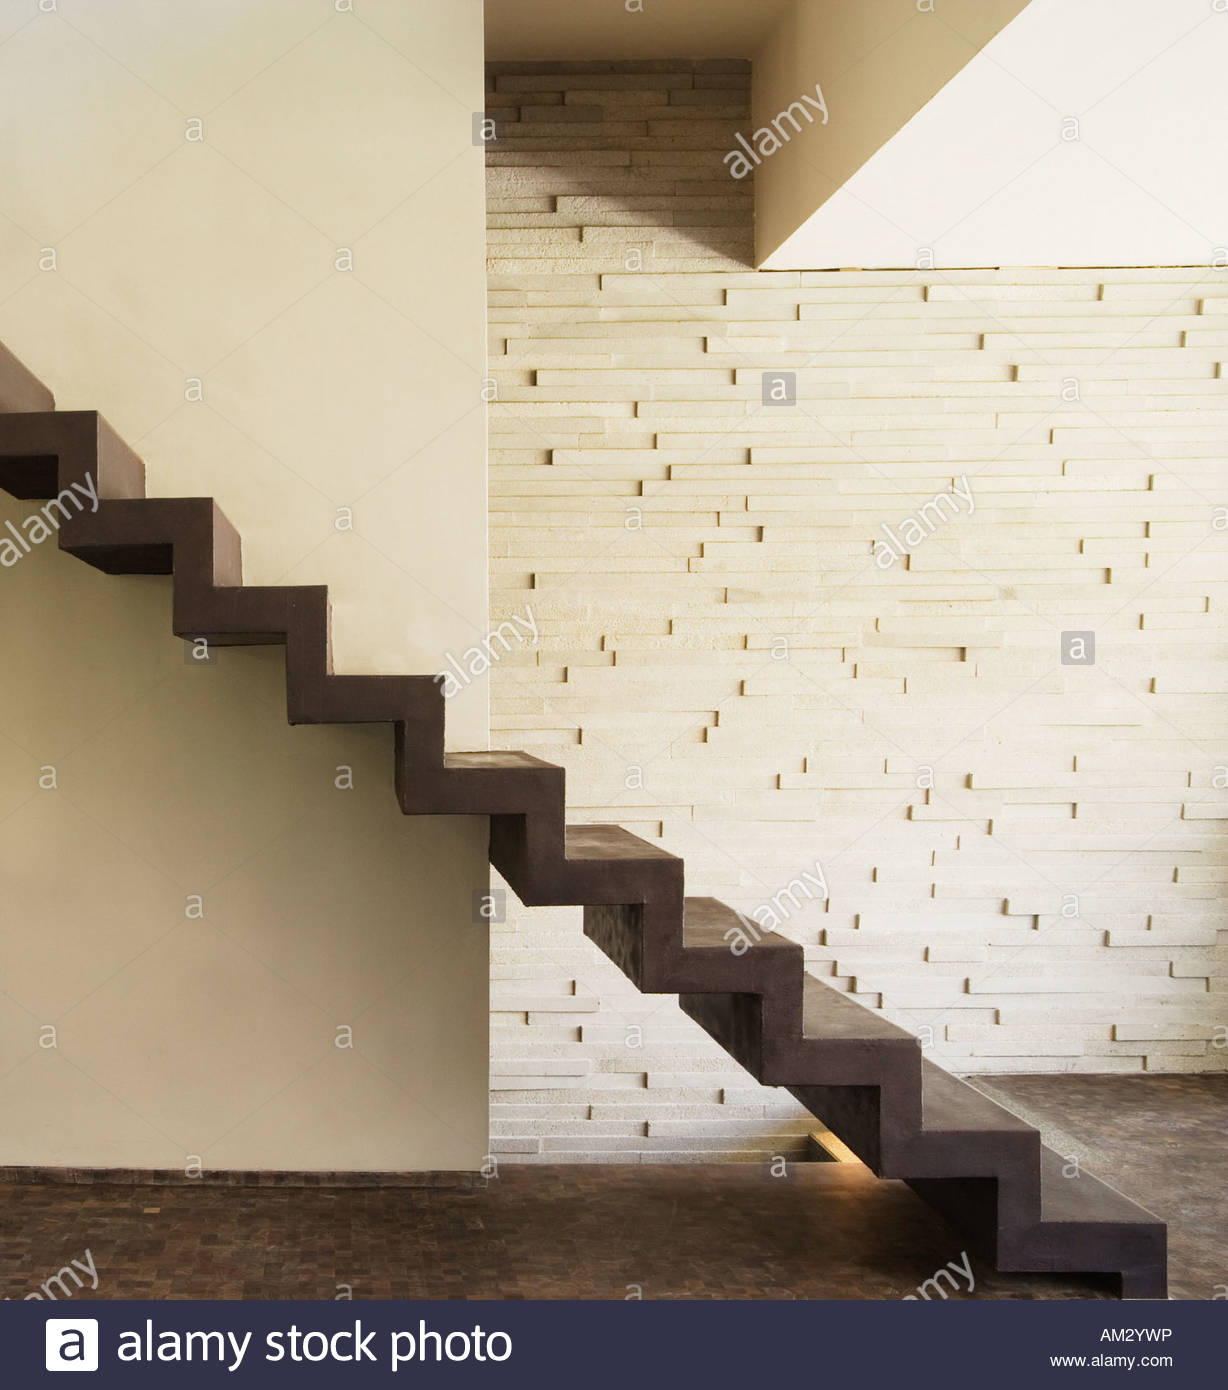 Modern stairs in front of wall - Stock Image